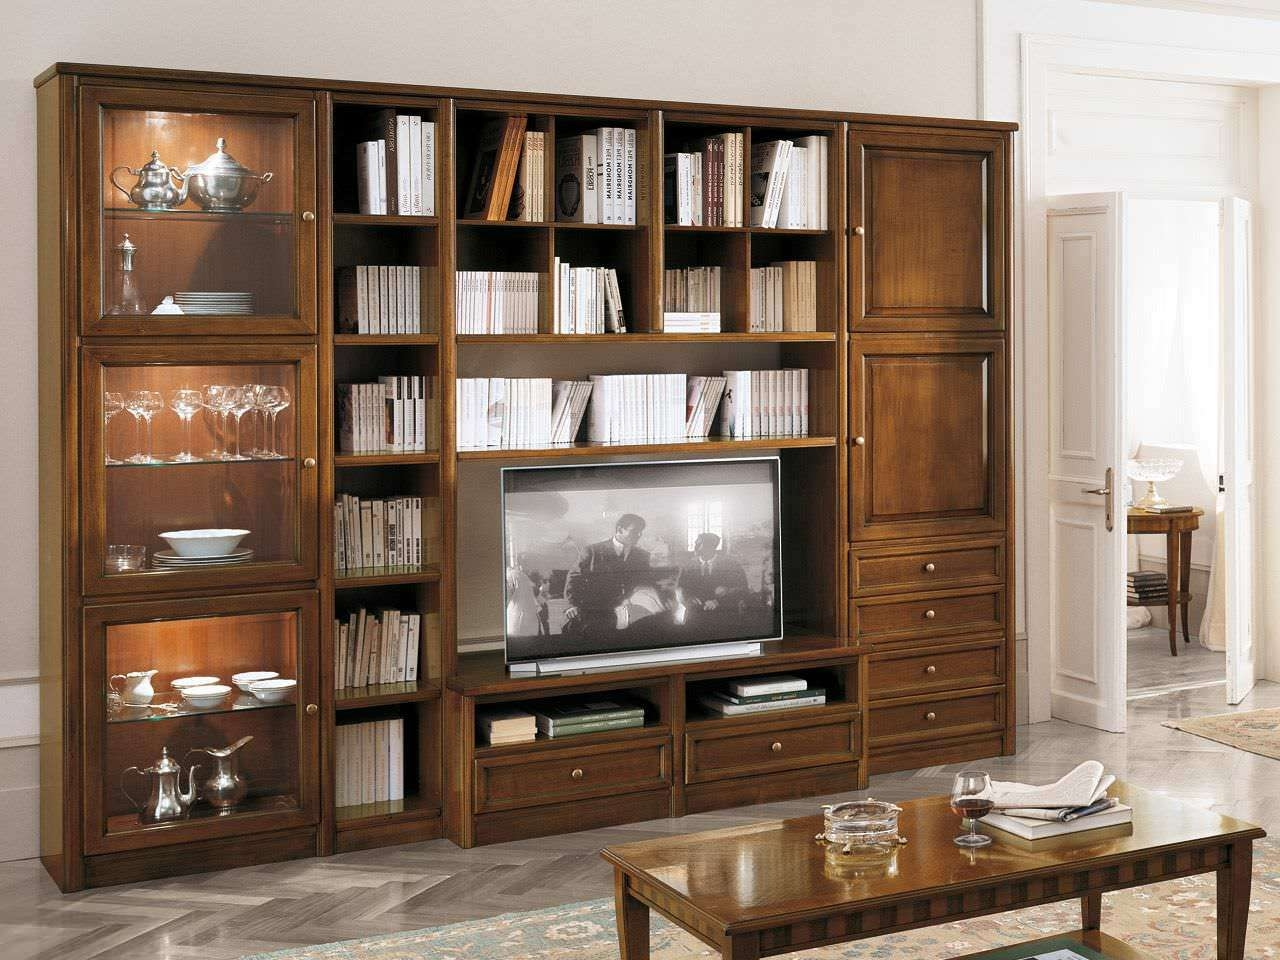 Traditional Tv Cabinet / Wooden – Livingpierangelo Sciuto Pertaining To Traditional Tv Cabinets (View 14 of 20)